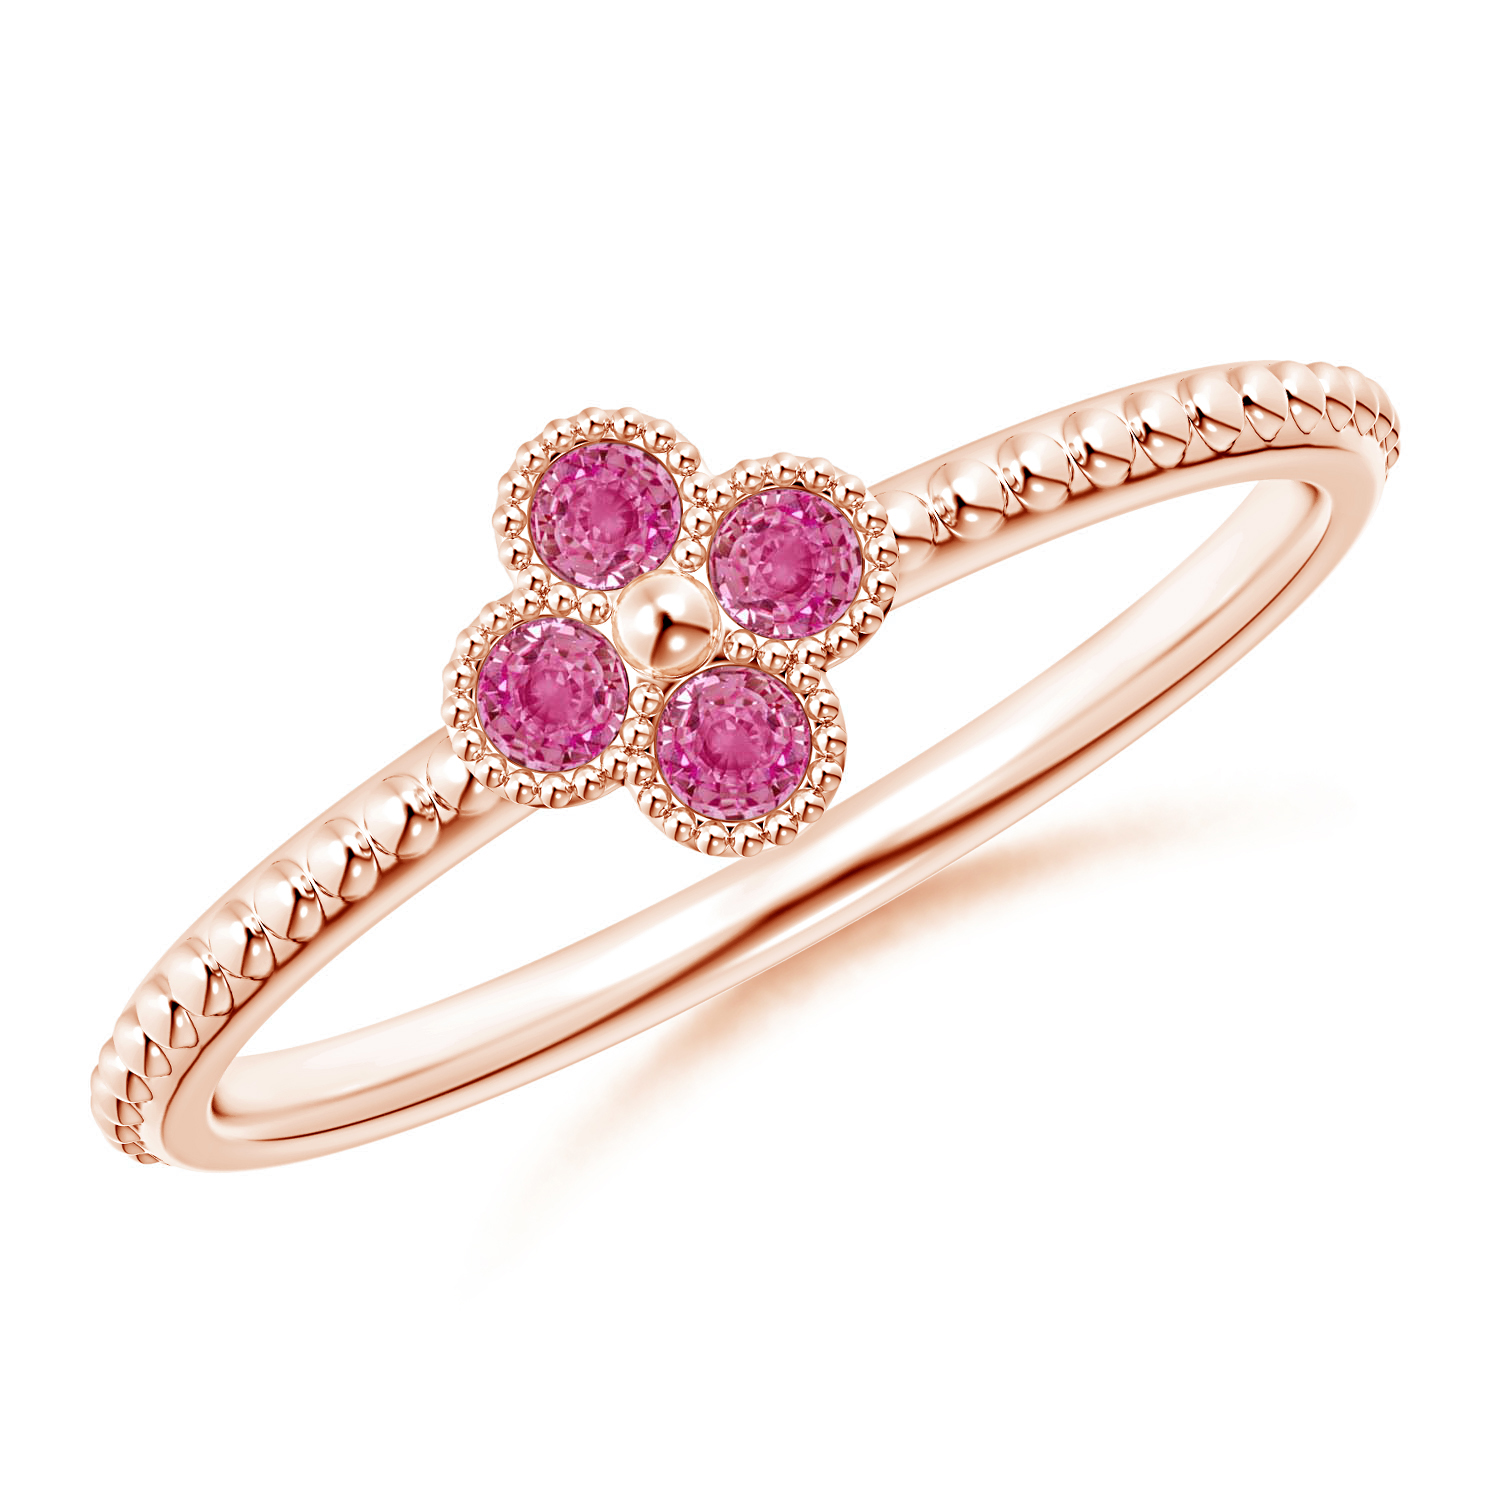 Pink Sapphire Four Leaf Clover Ring with Beaded Shank - Angara.com